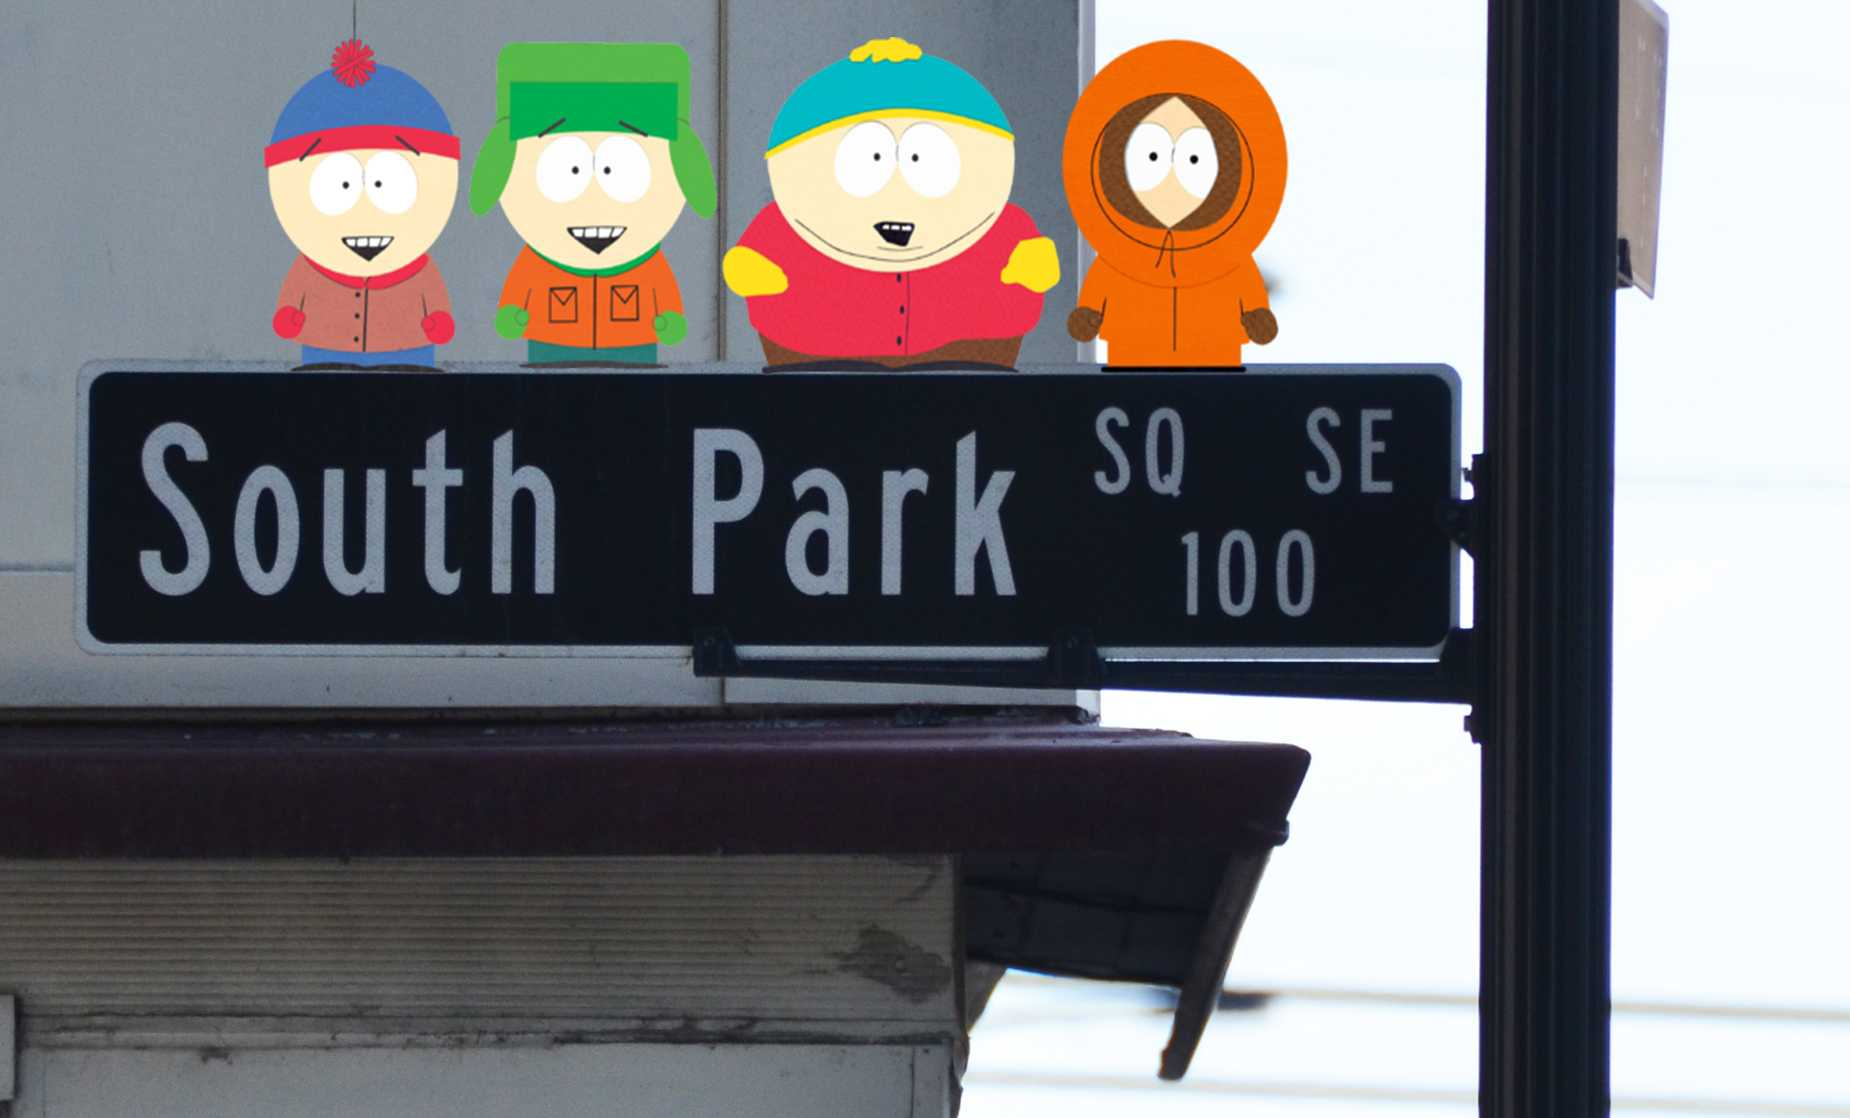 The South Park boys, Stan, Kyle, Eric, and Kenny come back together to start the 20th season.